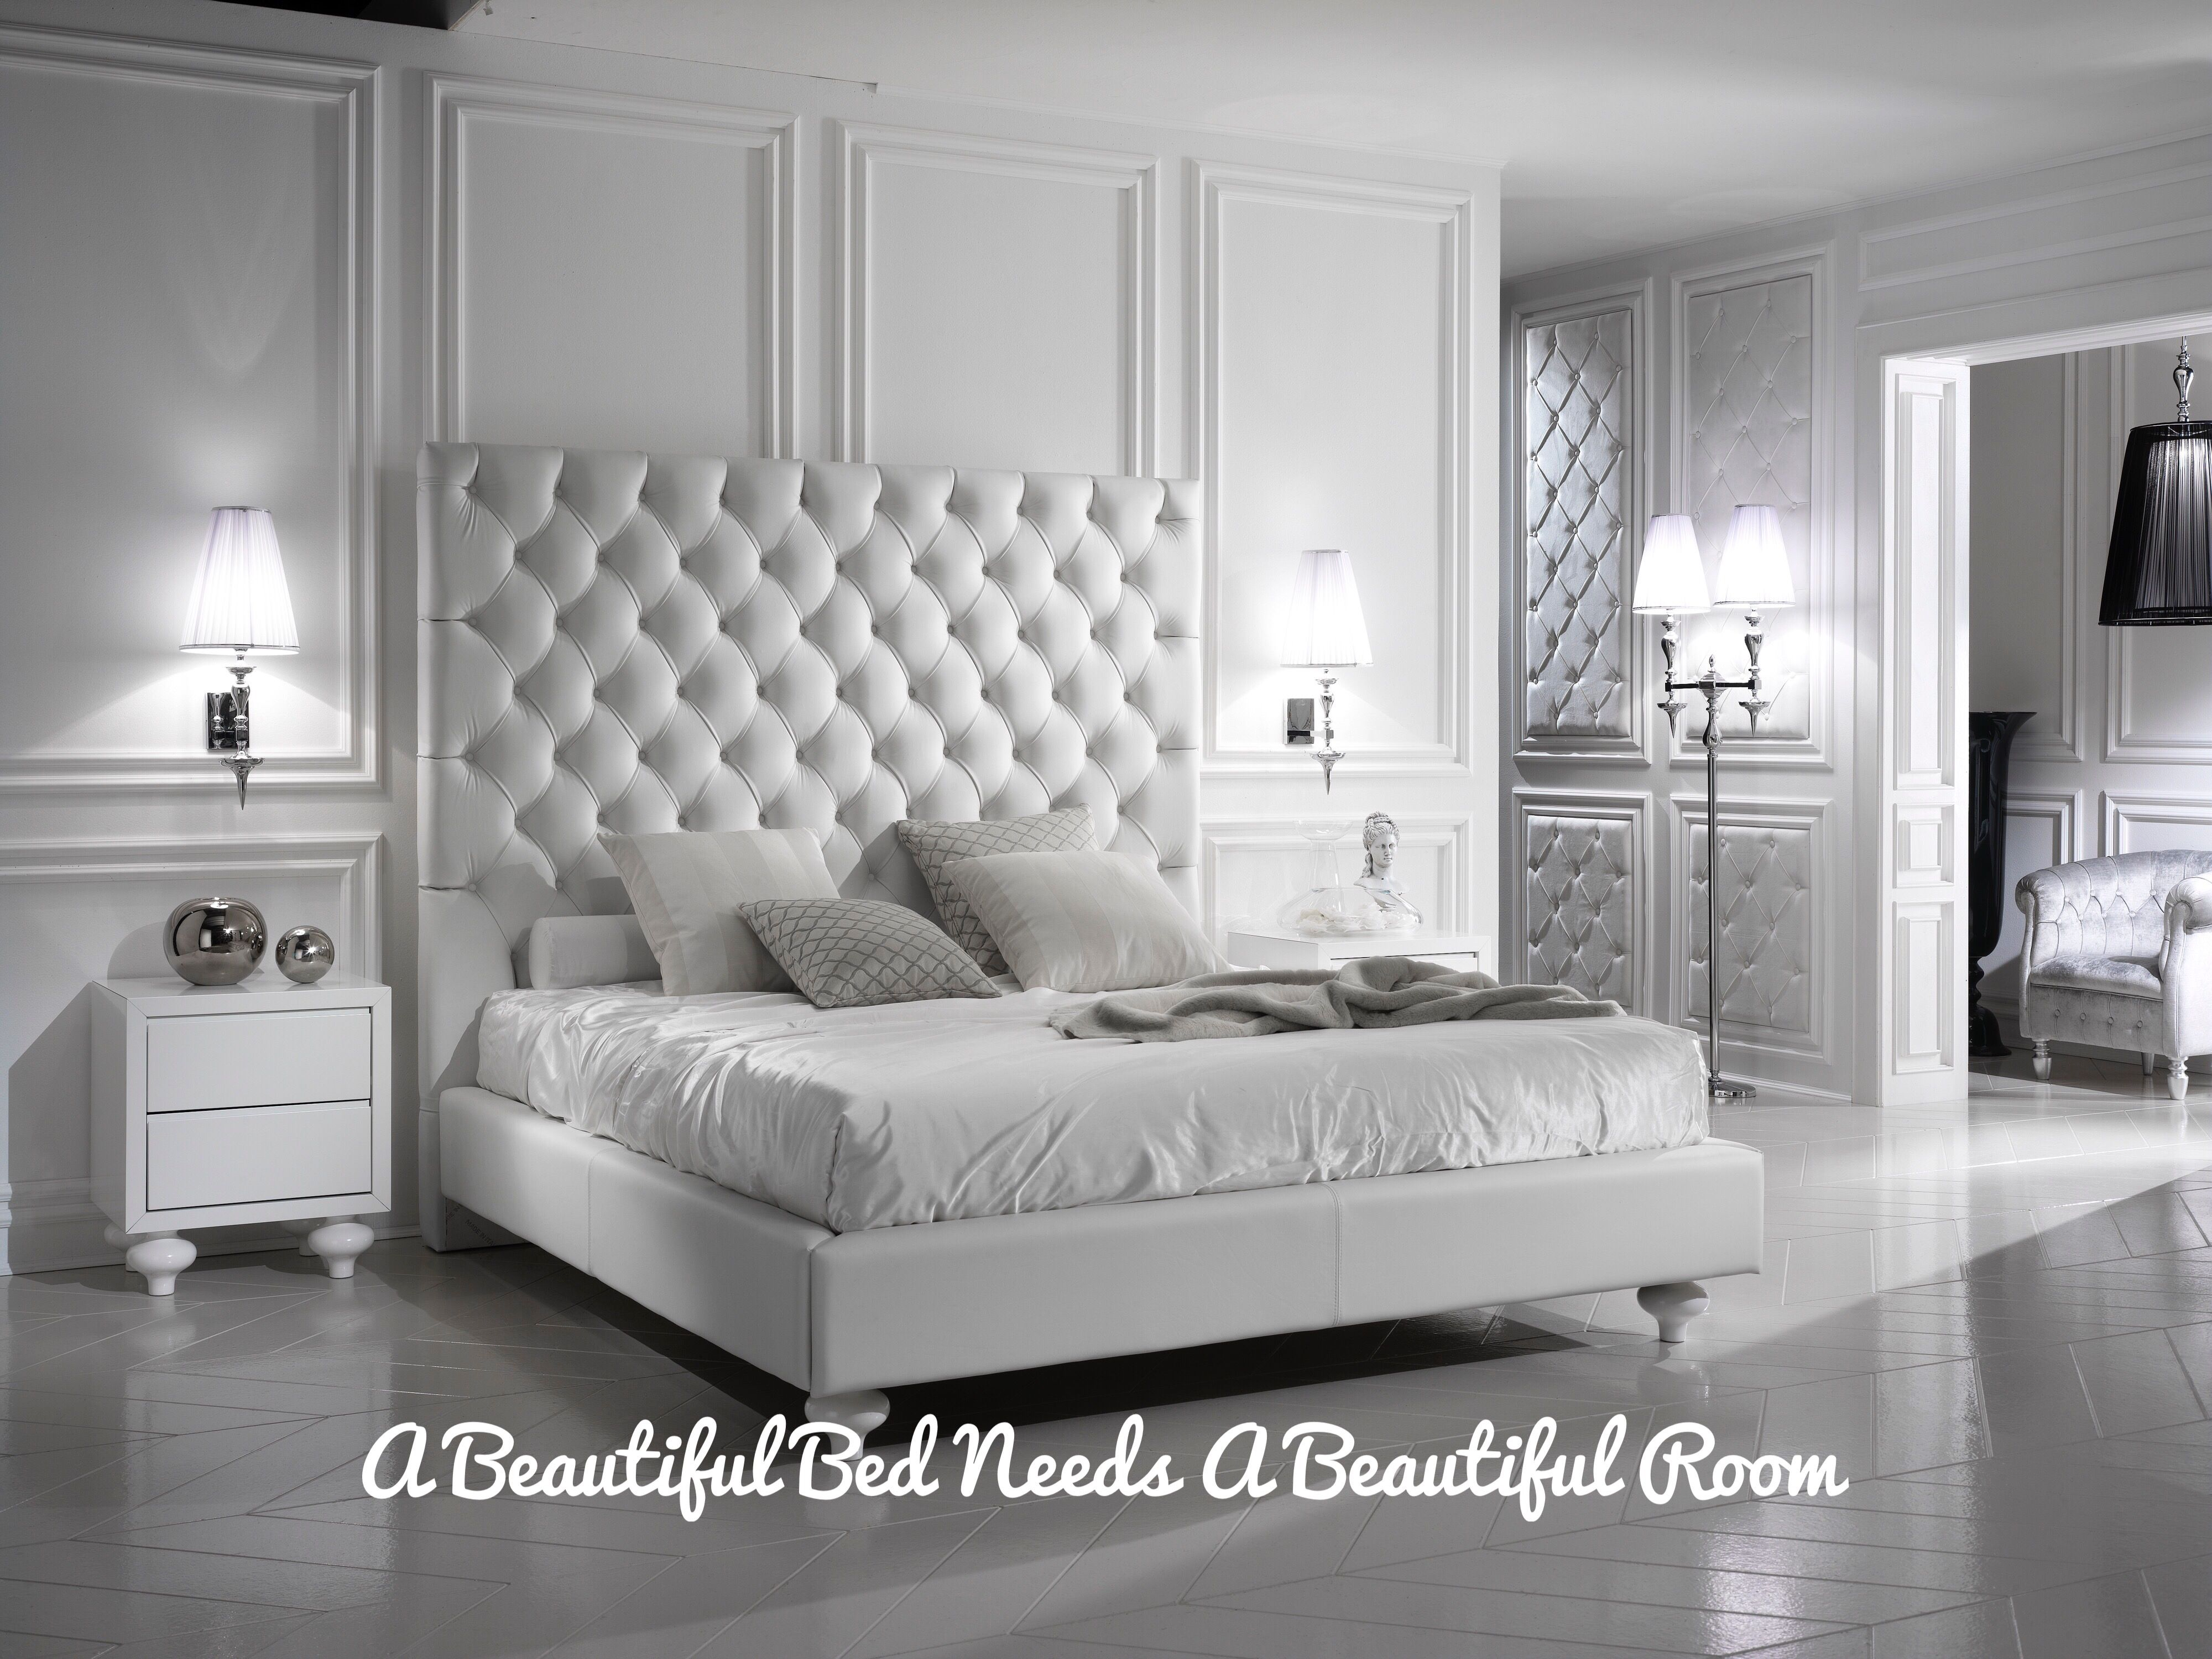 inspirational beds of white bed elegant unique love high less inner the decorator design ideas features headboard home will leather for interior your